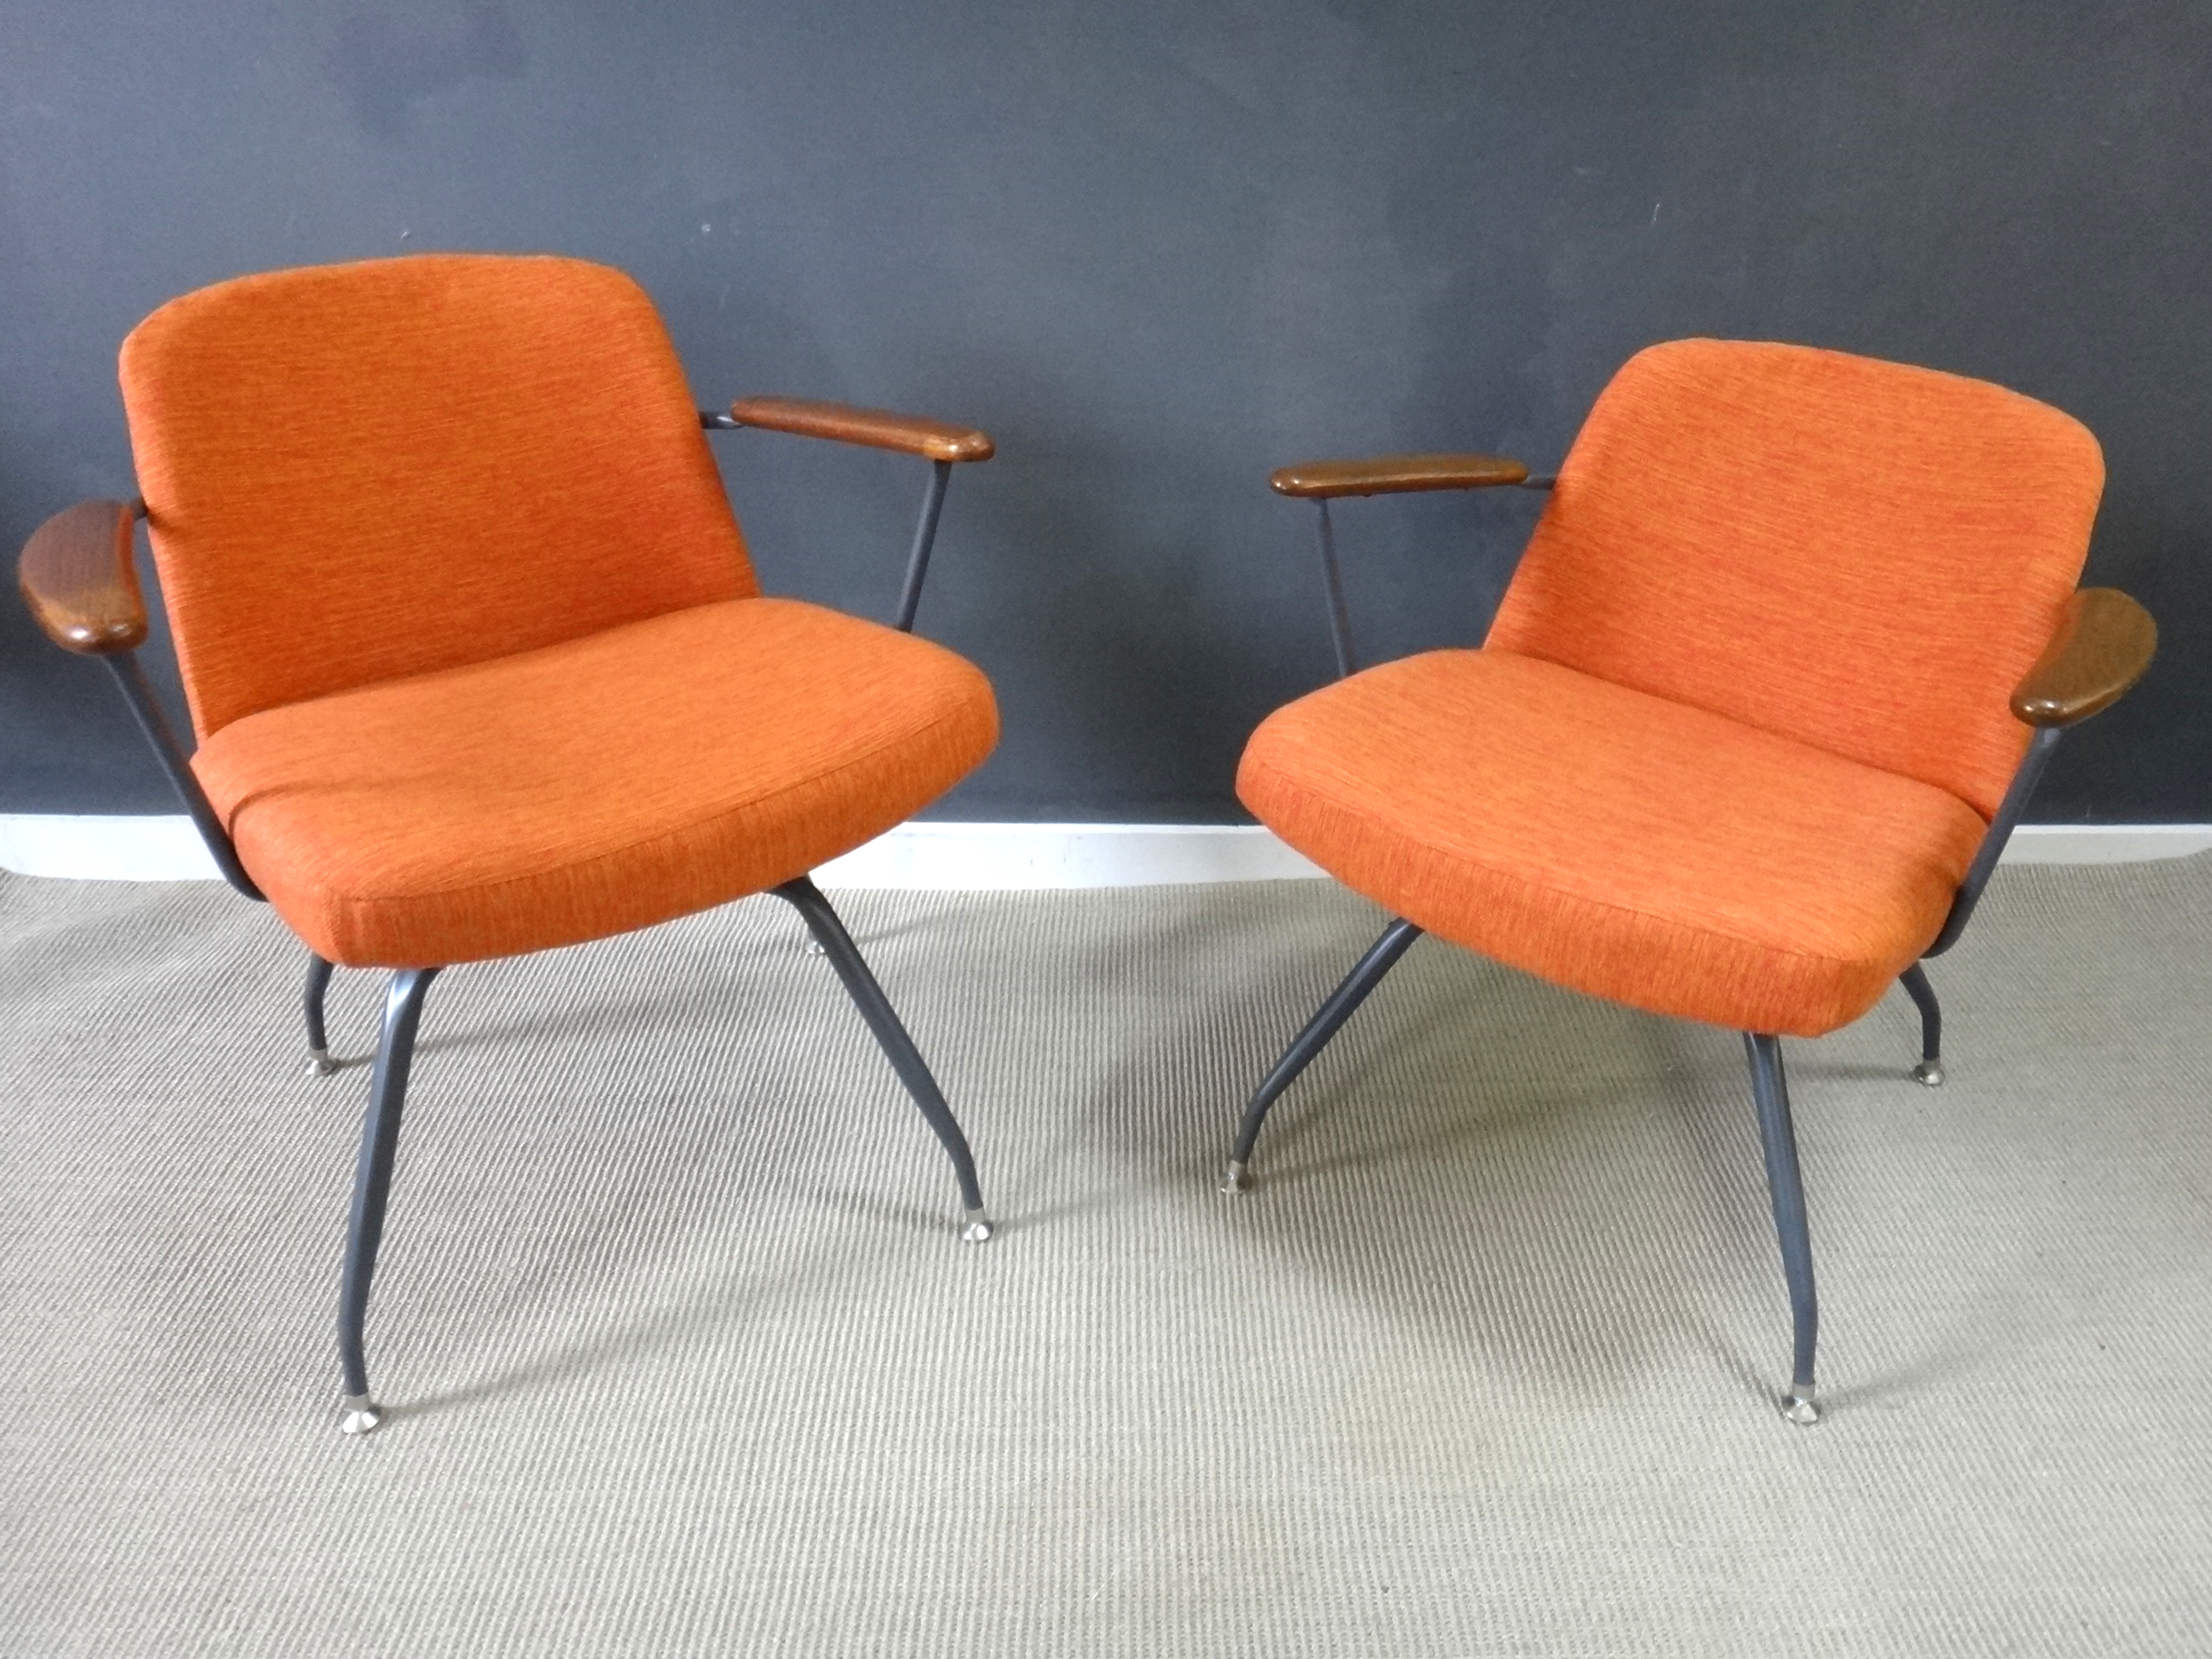 Pair Mid Century Upholstered Seng Chairs ... & Pair Mid Century Upholstered Seng Chairs - Retrocraft Design ...